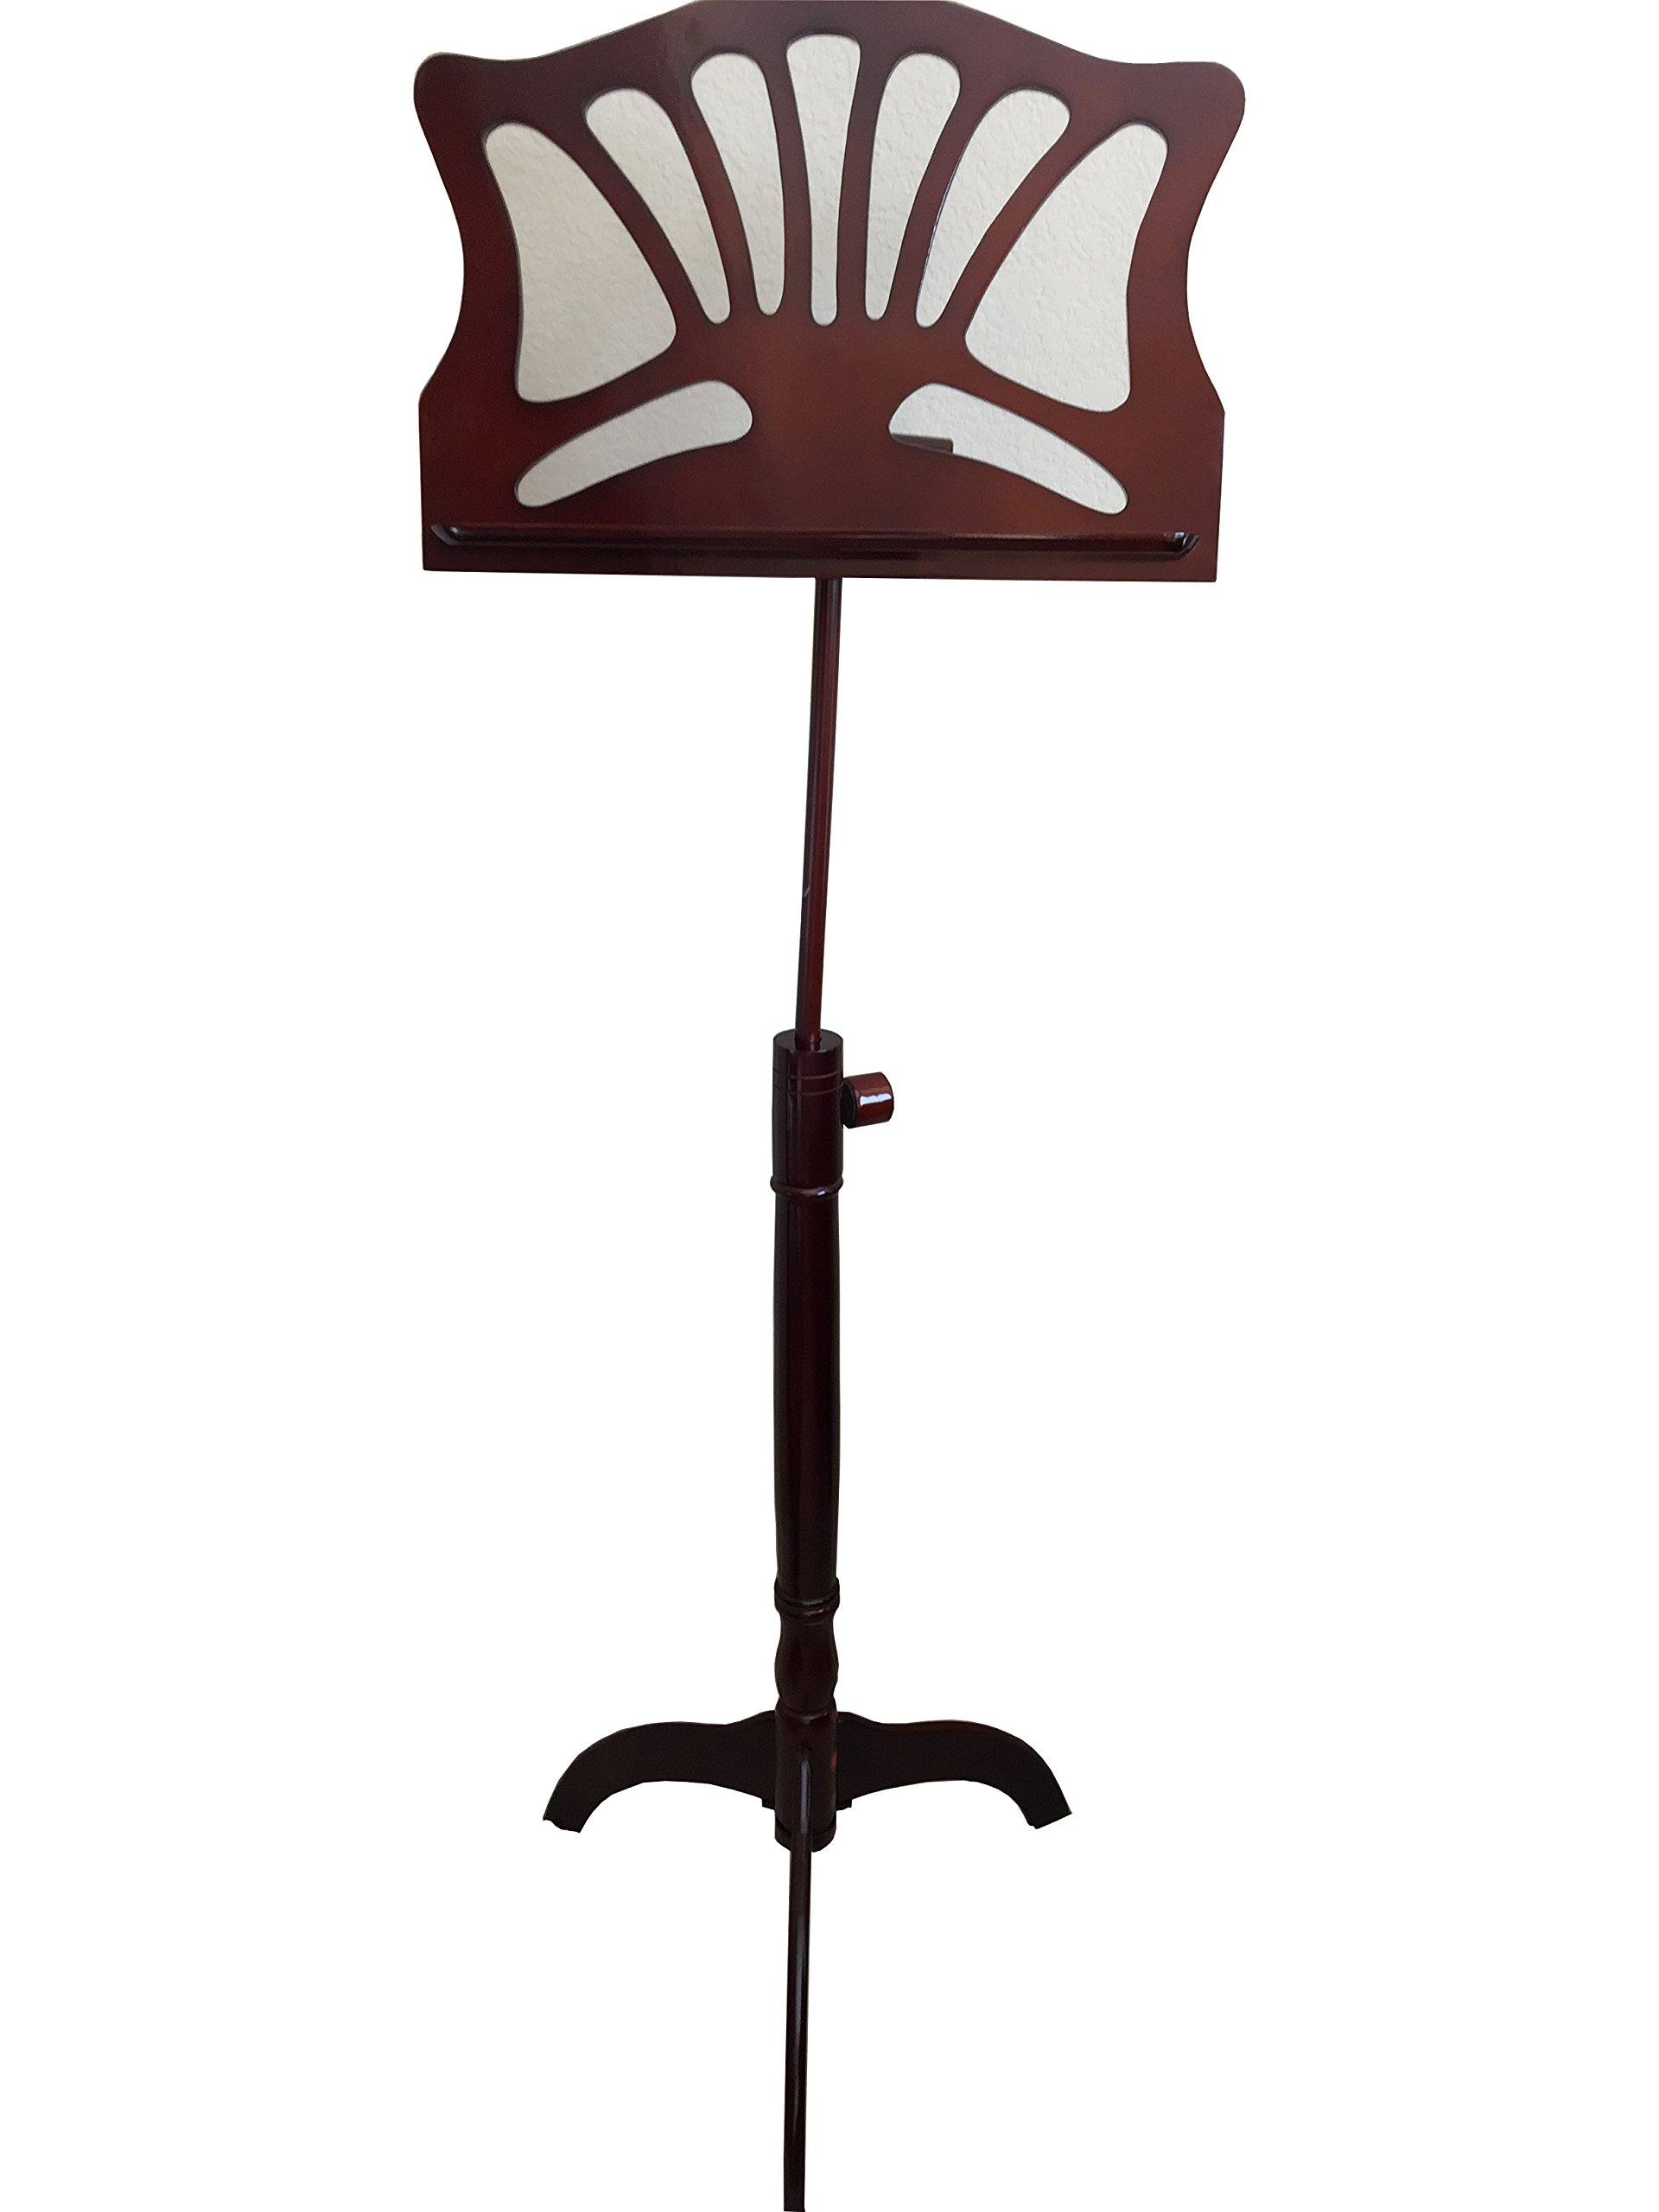 New Design Vio Music Wooden Music Stand, Strong